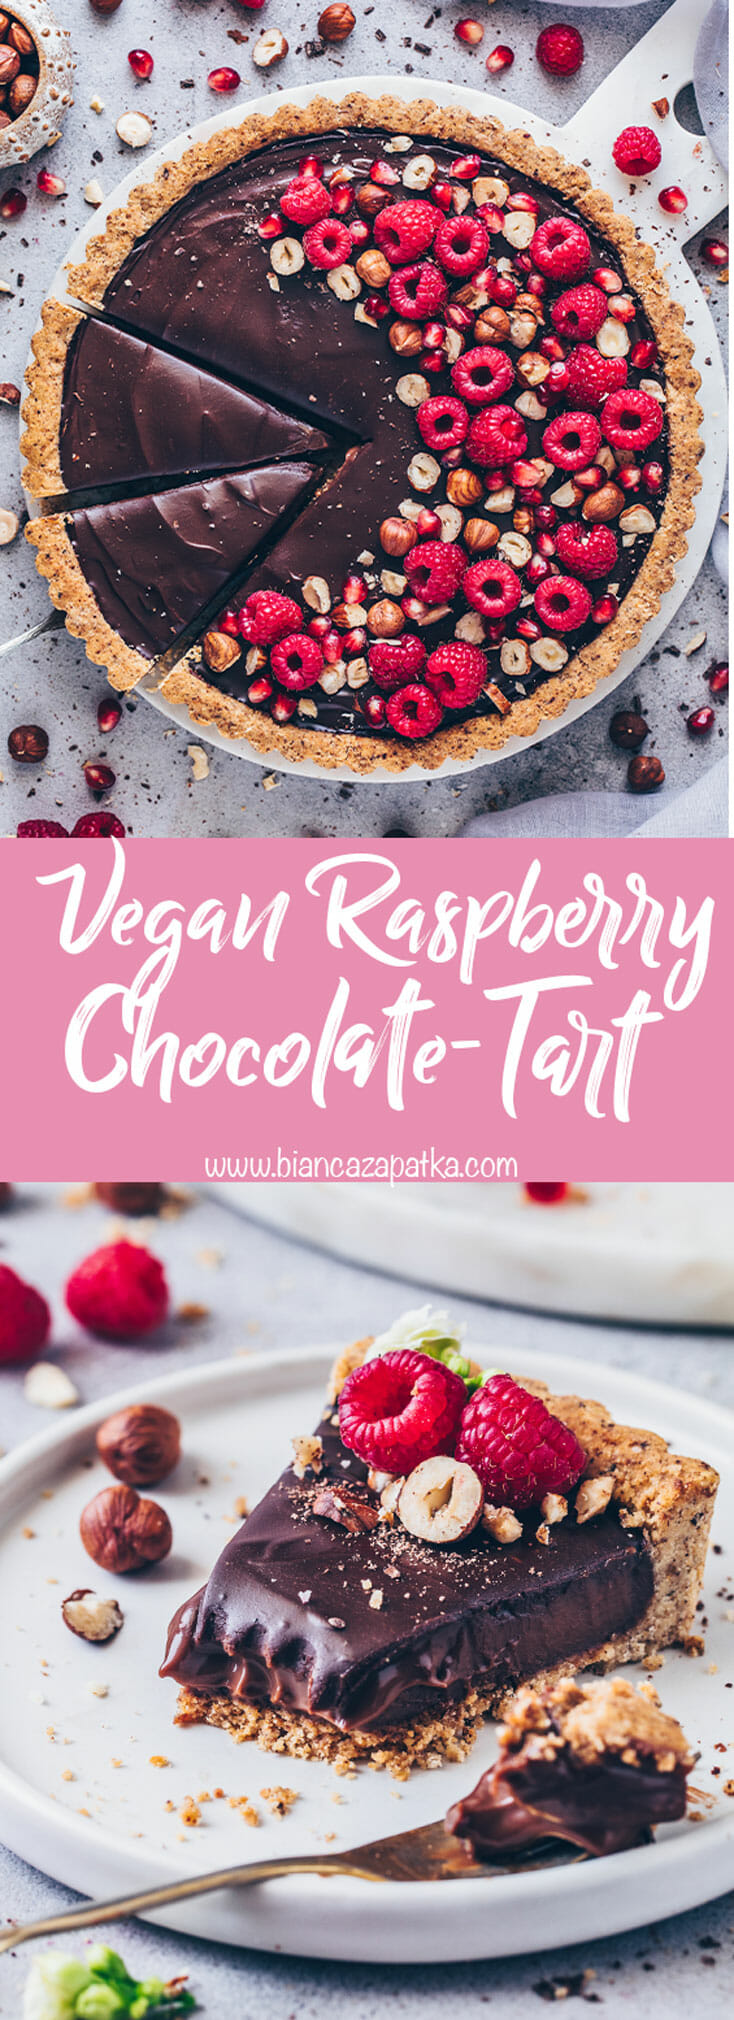 Raspberry Chocolate Tart with hazelnuts, Vegan Nutella Pie (food photography, food styling)